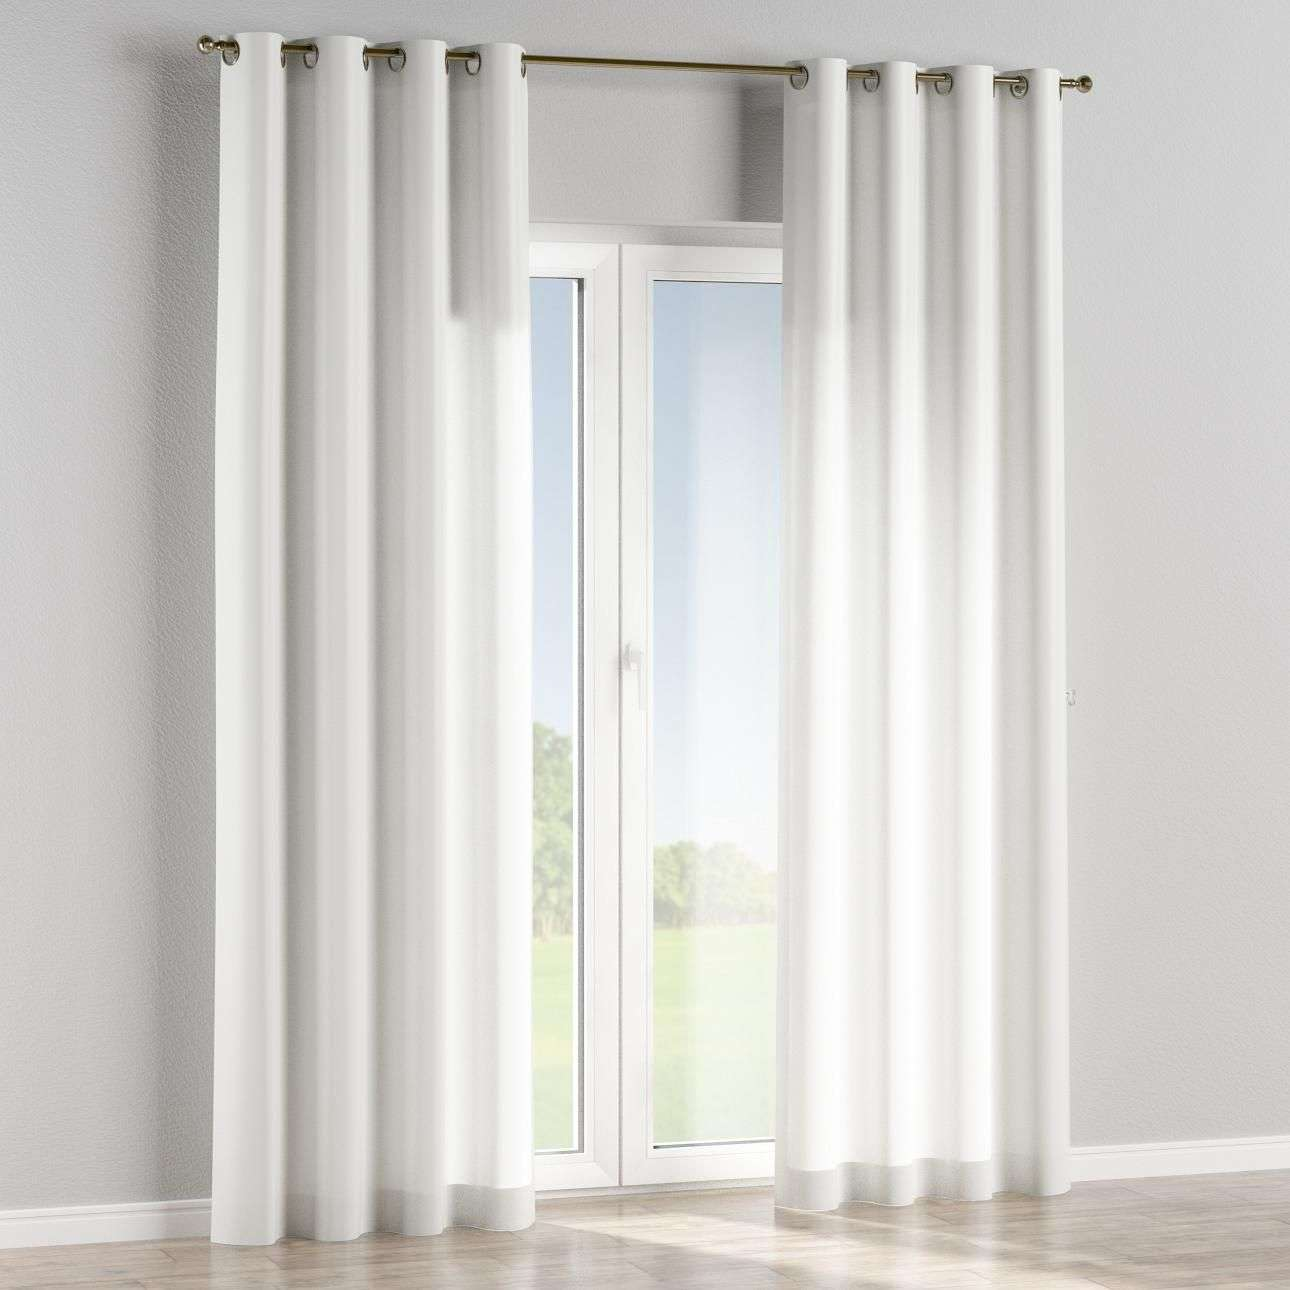 Eyelet curtains in collection Cardiff, fabric: 136-28